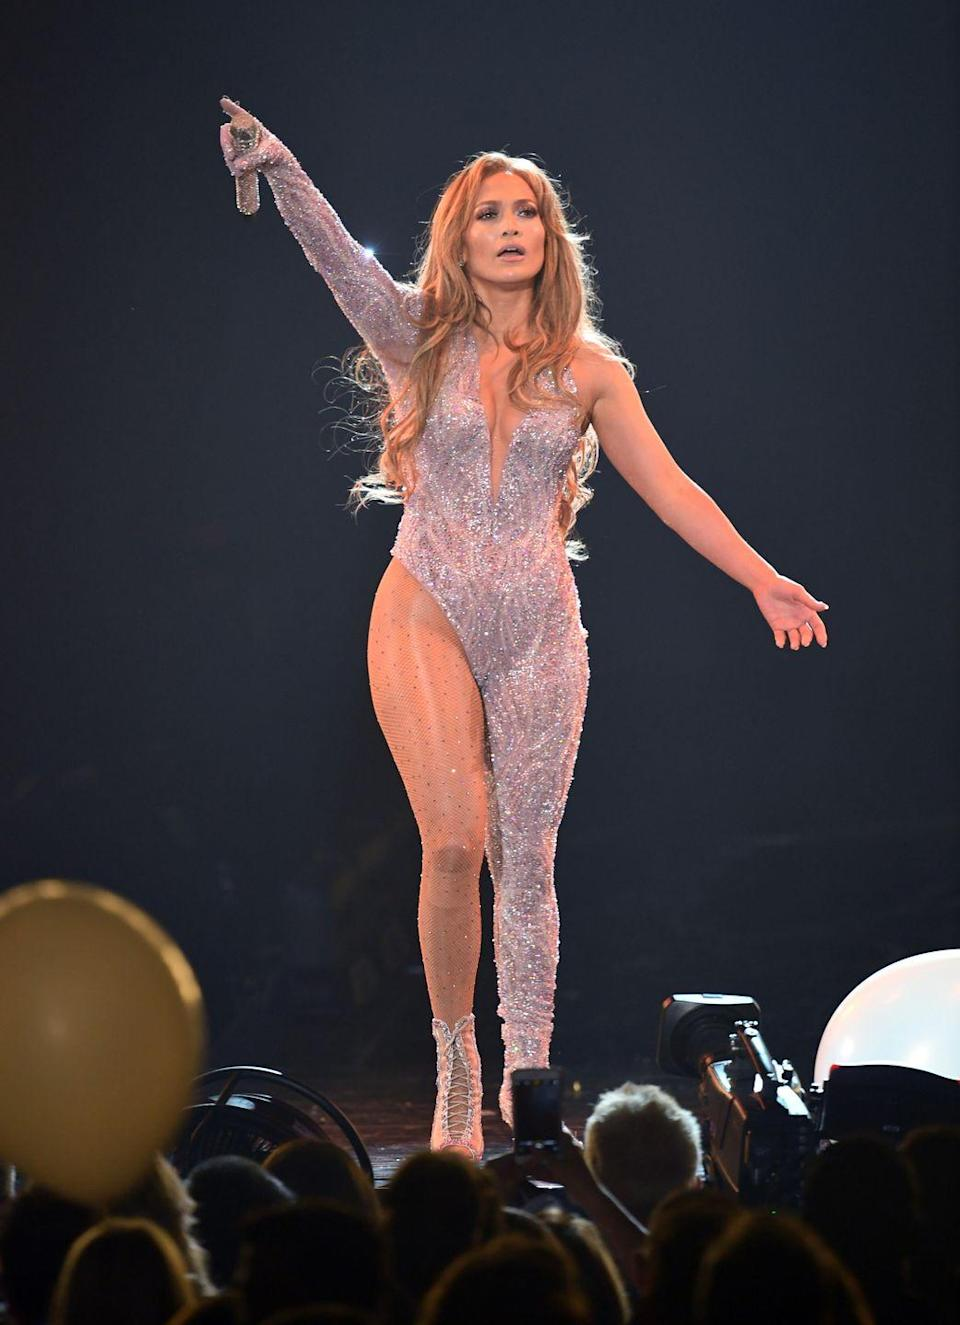 <p>Jenny from the block performs onstage in California during her It's My Party Tour in an asymmetrical glitter jumpsuit. Seriously, IDK how she does it, but she looks amazing wearing one pant leg?!</p>